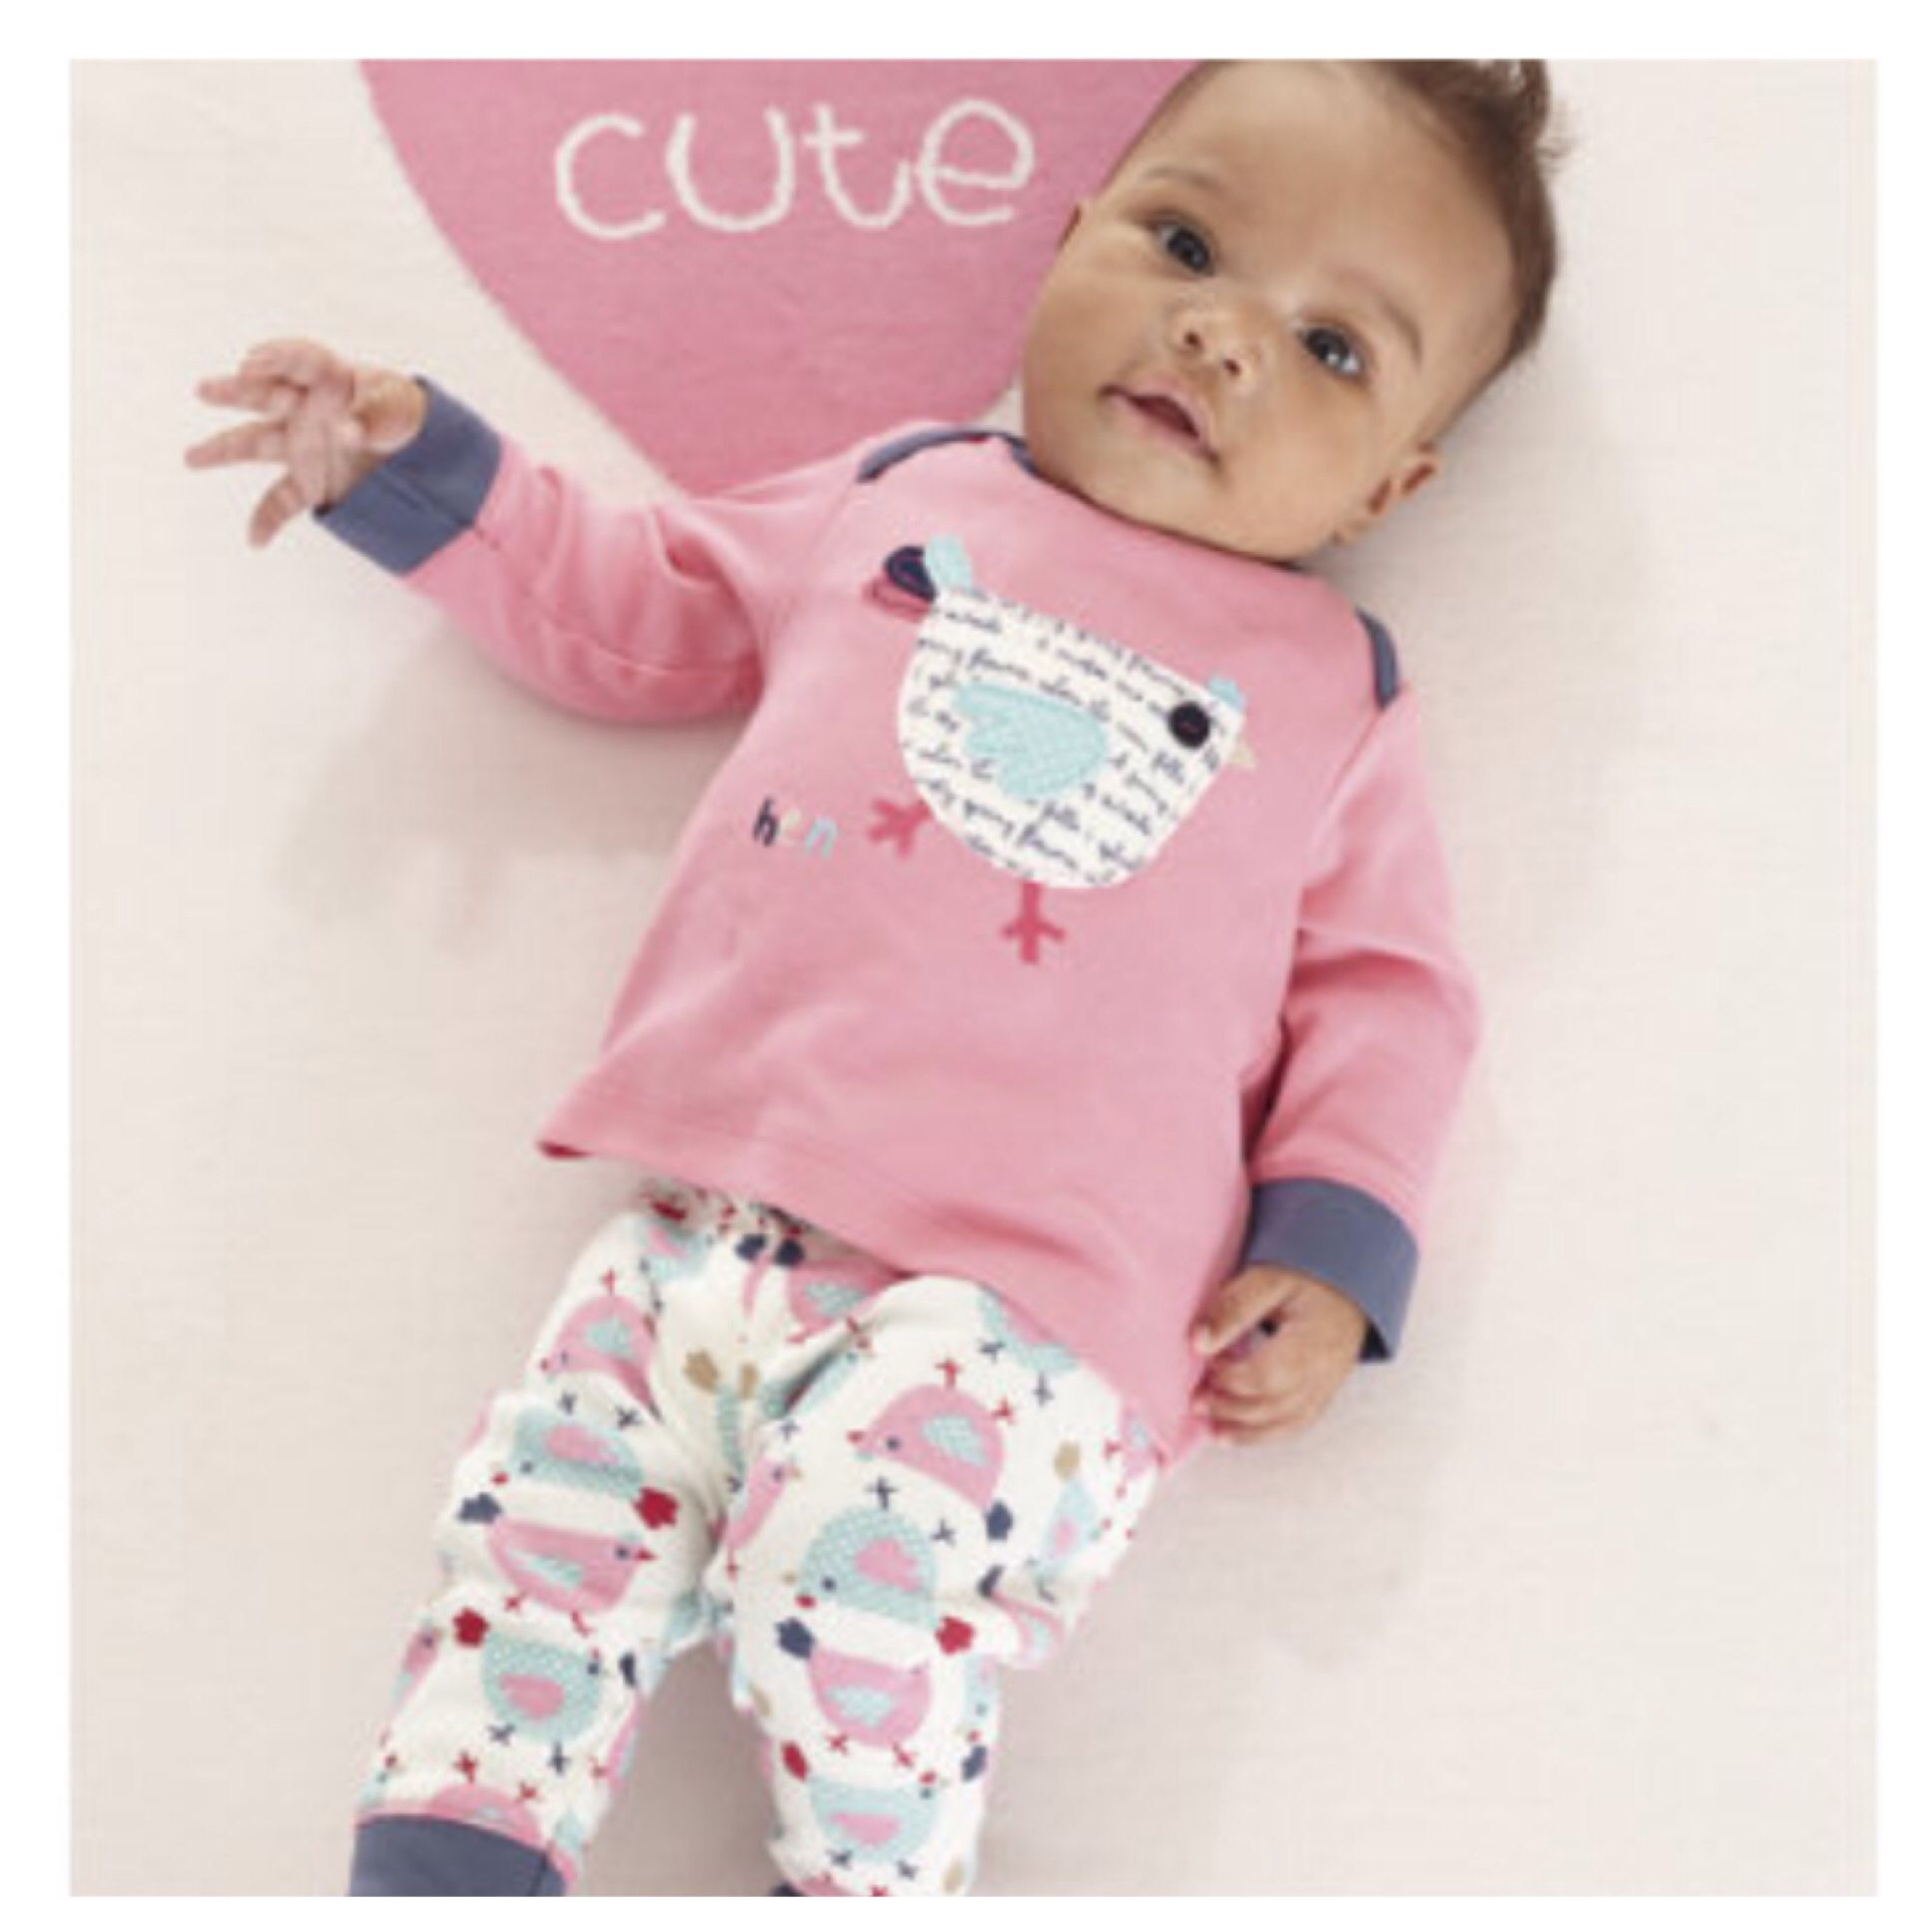 Cute baby clothes Baby ideas Pinterest